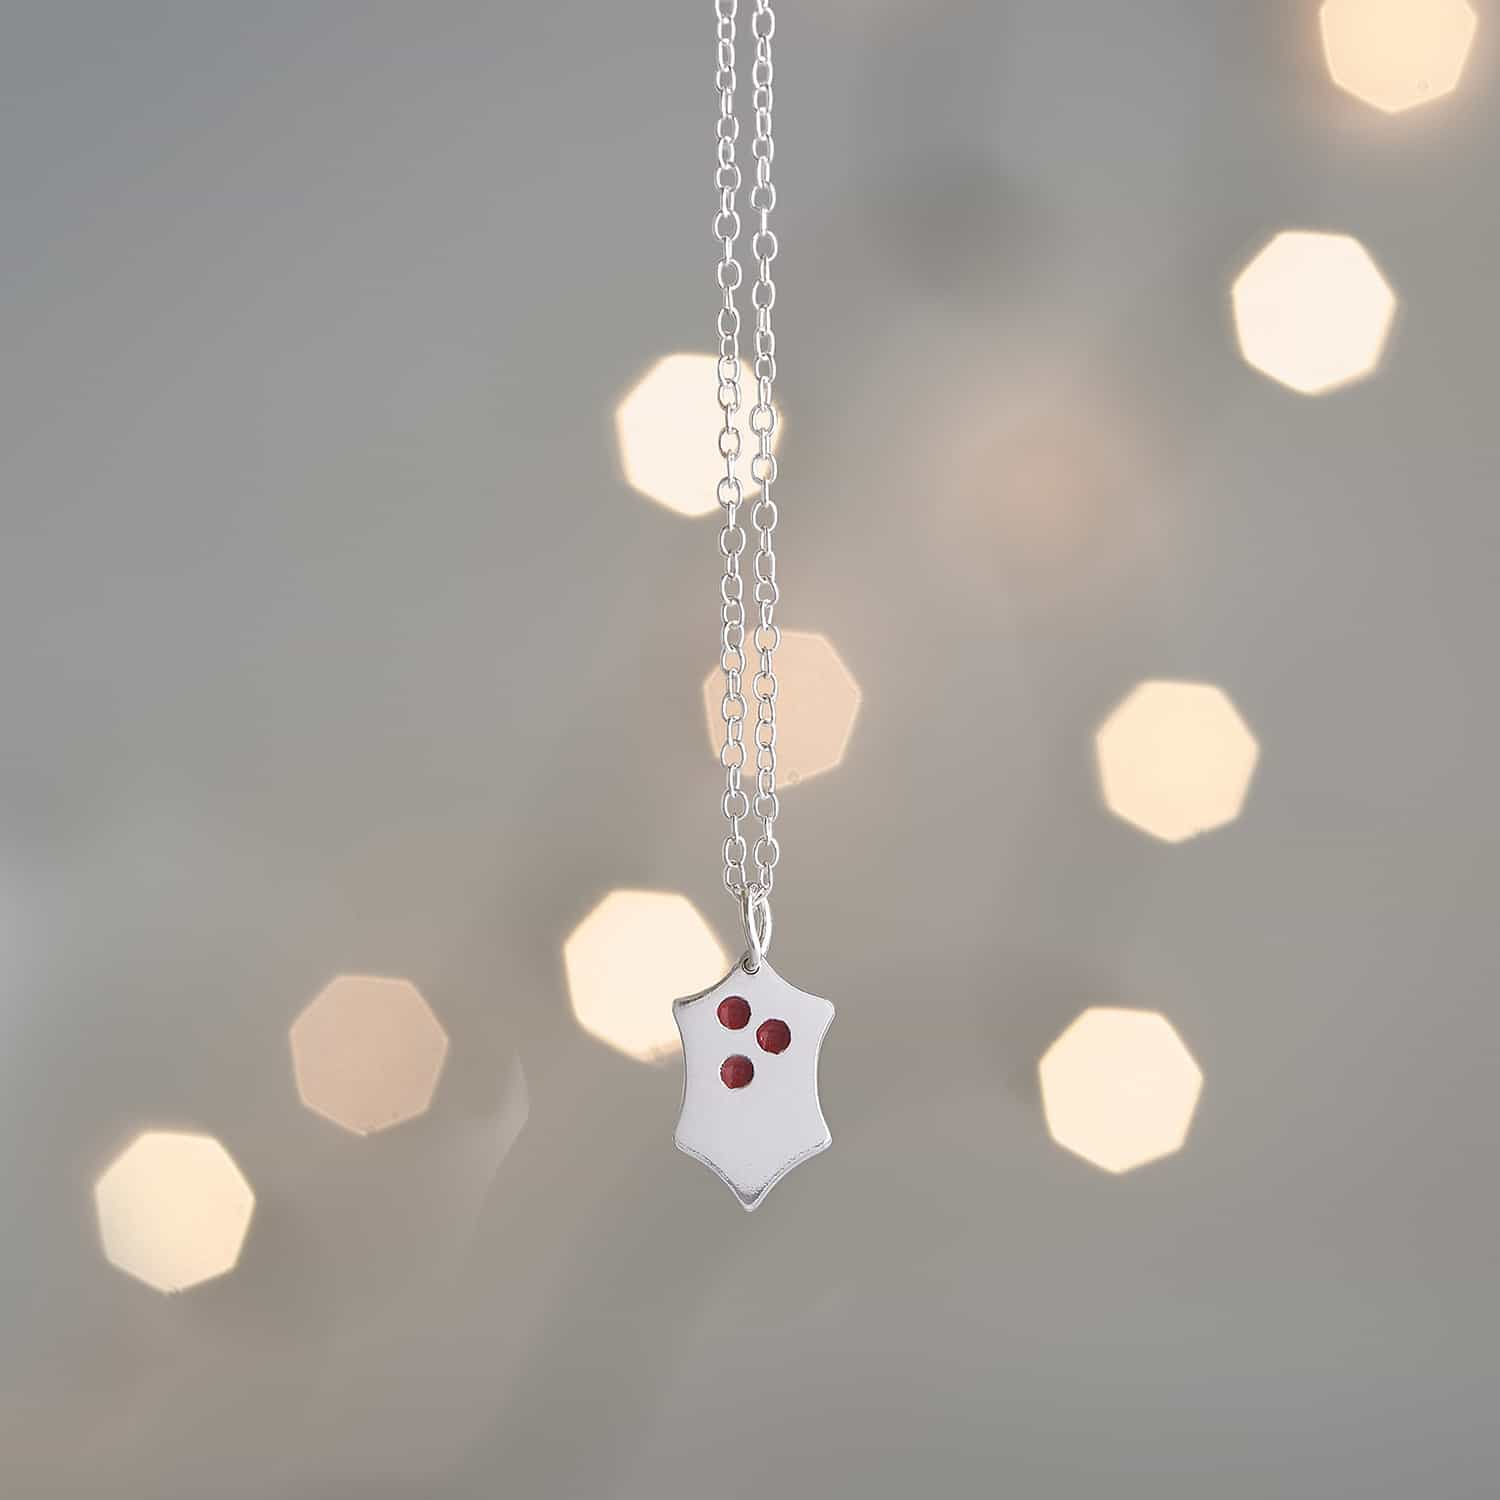 Silver pendant product photograph with lights in the background out of focus bokeh